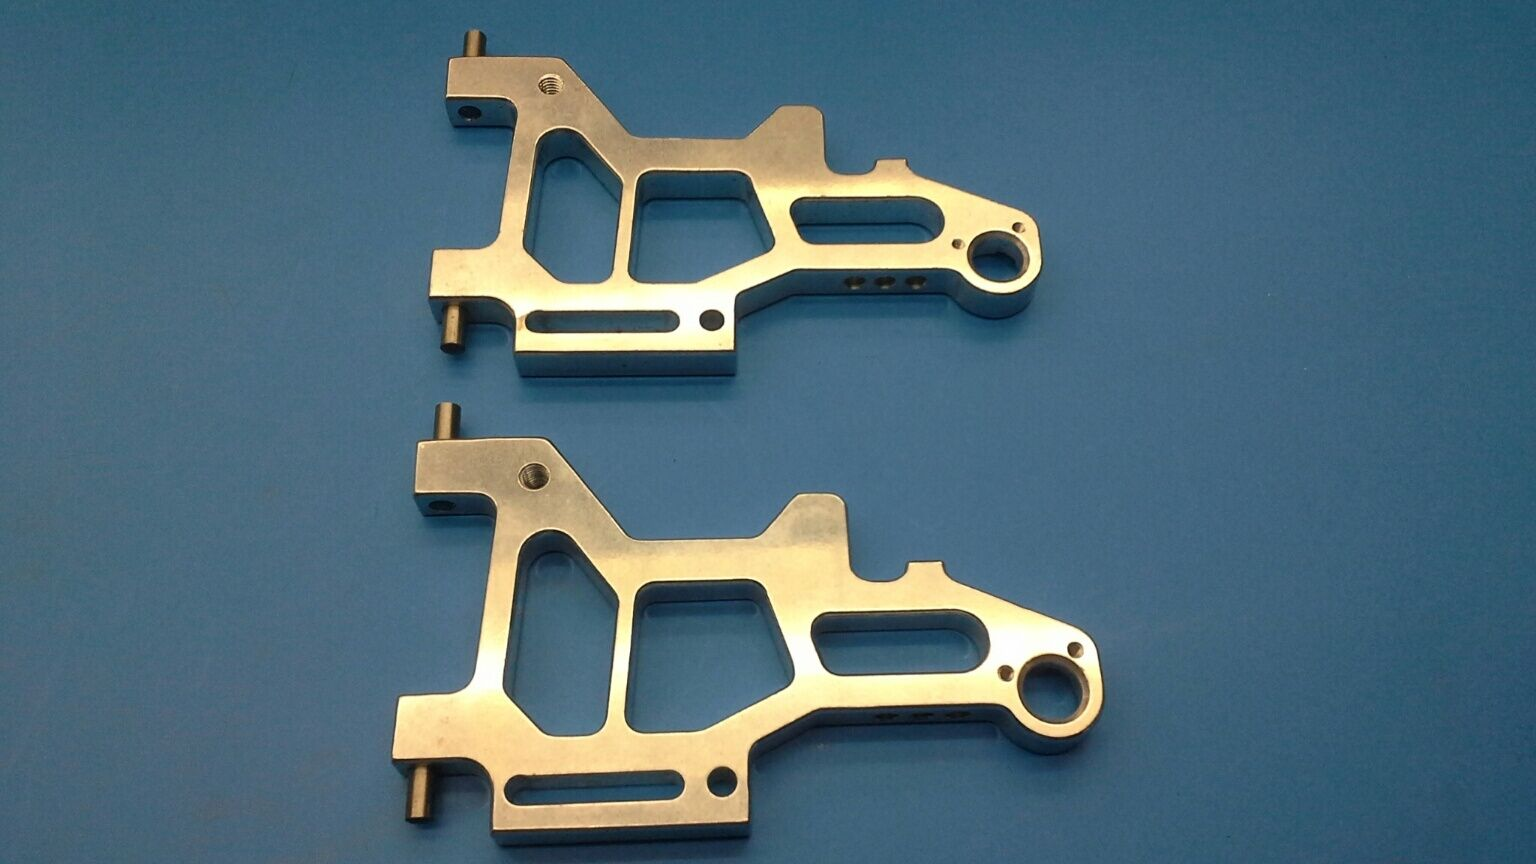 Genuine Lauterbacher rear-lower wishbones for Lauterbacher l 3 mega-sprint